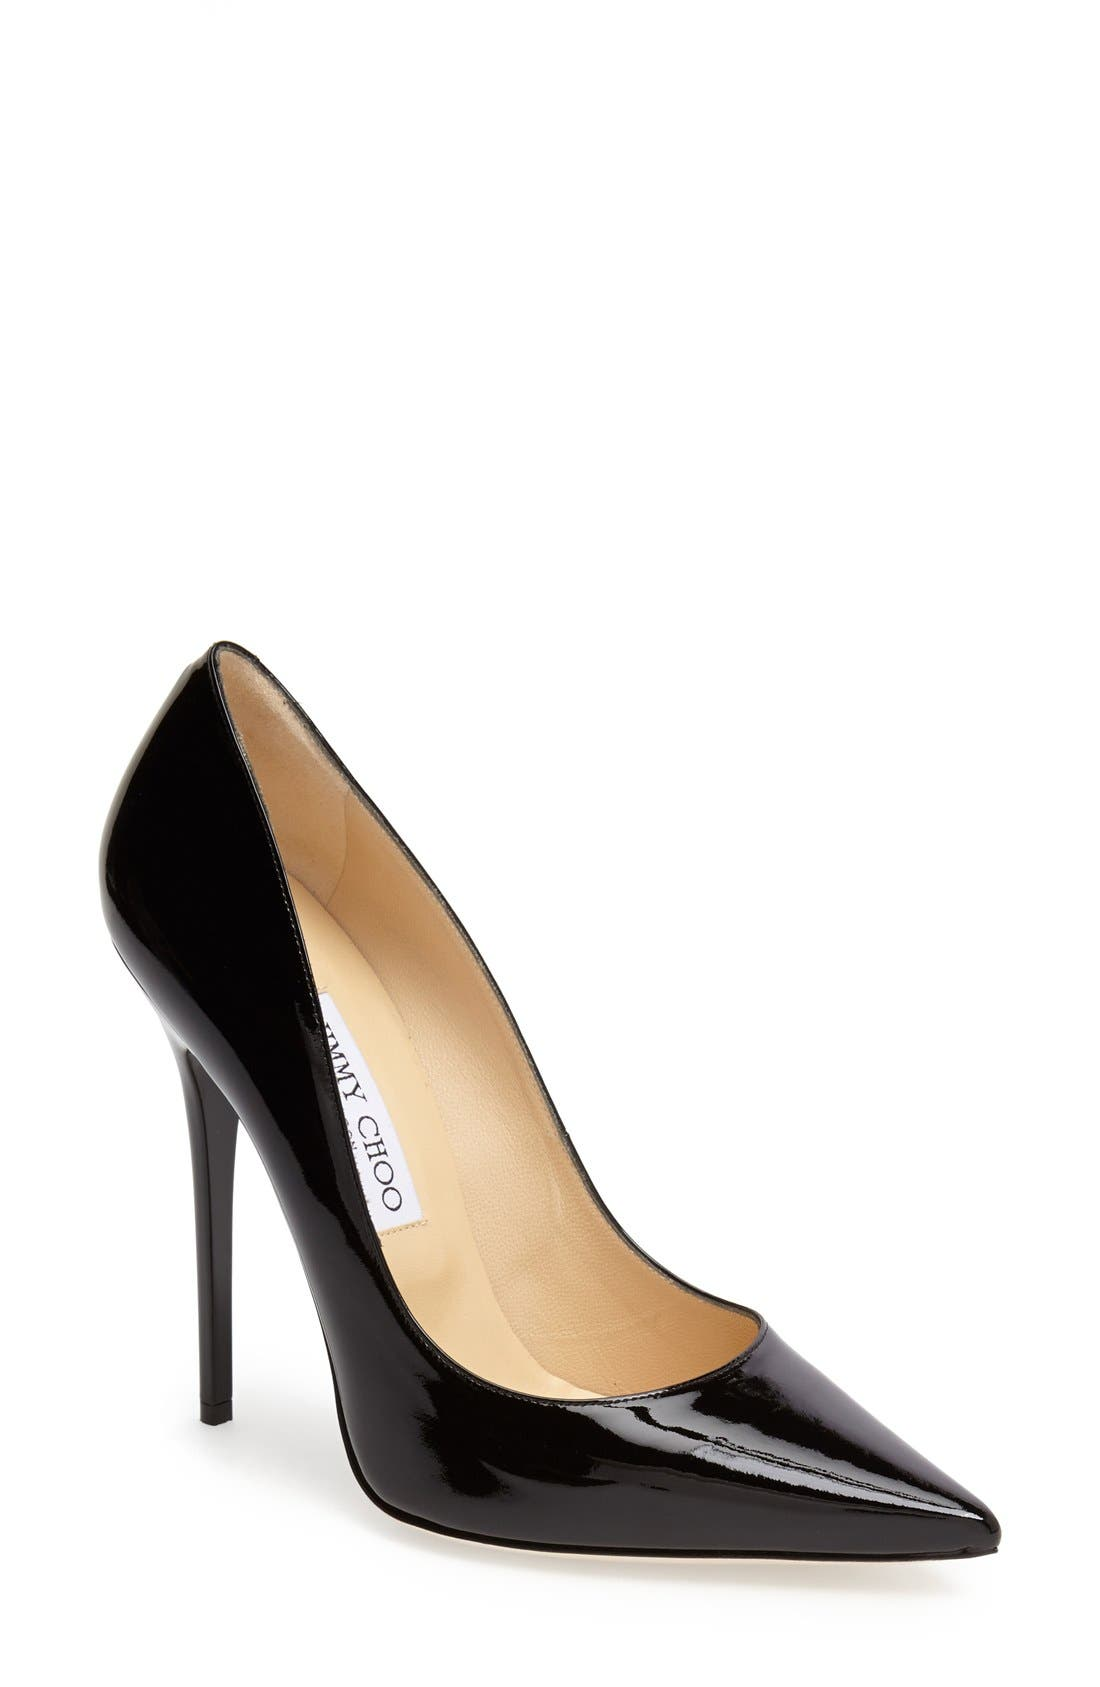 Alternate Image 1 Selected - Jimmy Choo 'Anouk' Pump